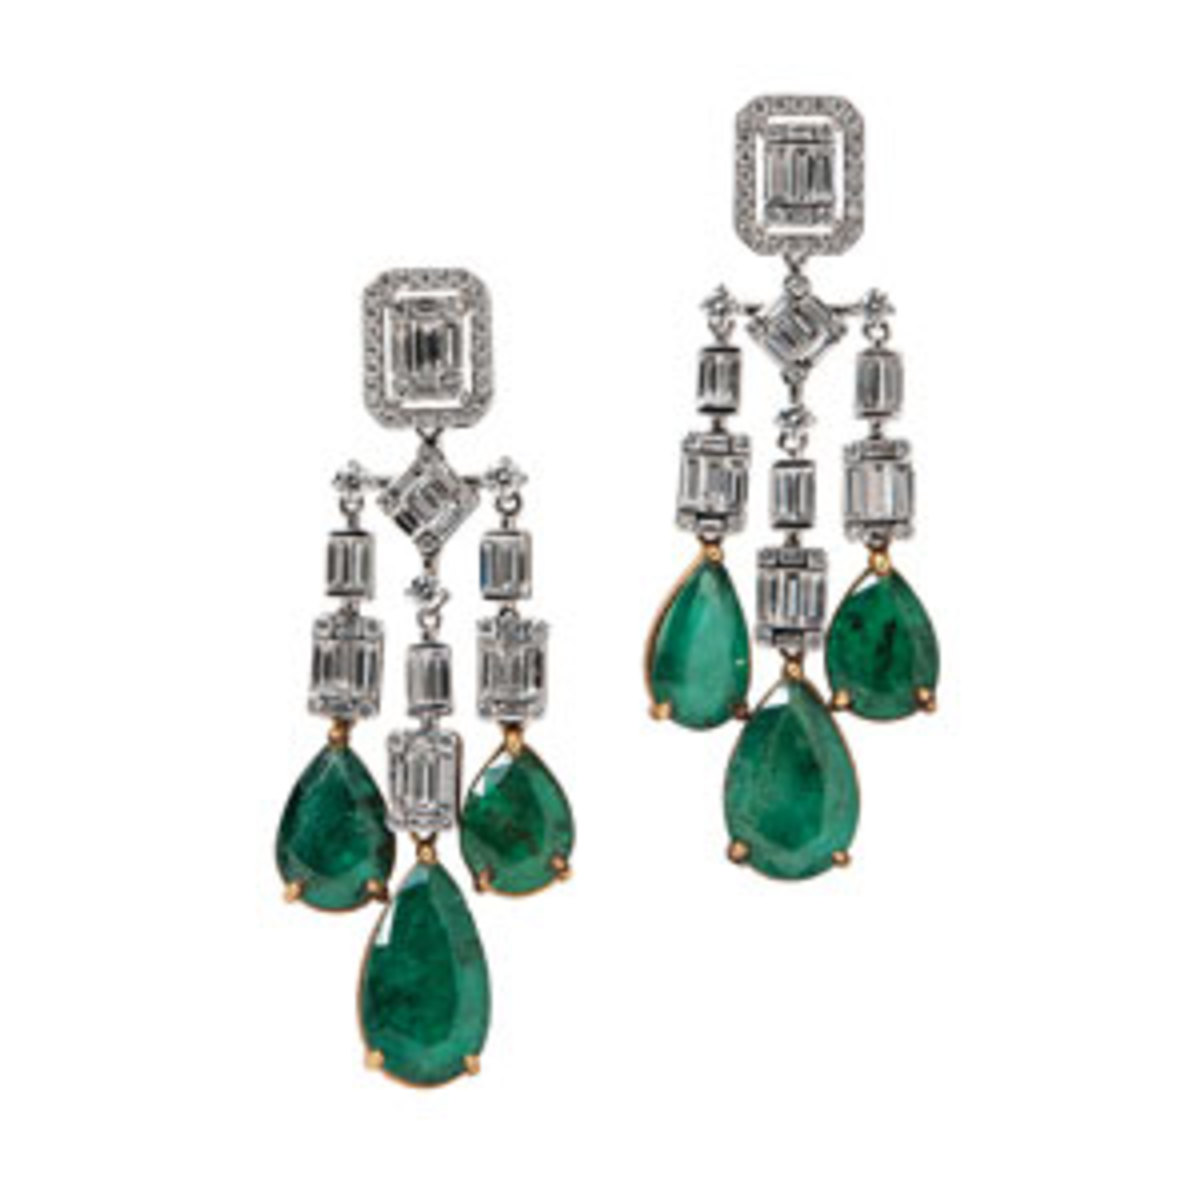 """18kt gold, emerald, and diamond earrings, Umrao,the full- and baguette-cut diamonds suspending emerald drops, total diamond wt. 2.45, total emerald wt. 12.15 cts., 1-7/8"""" l.Estimate: $4,000-$6,000."""